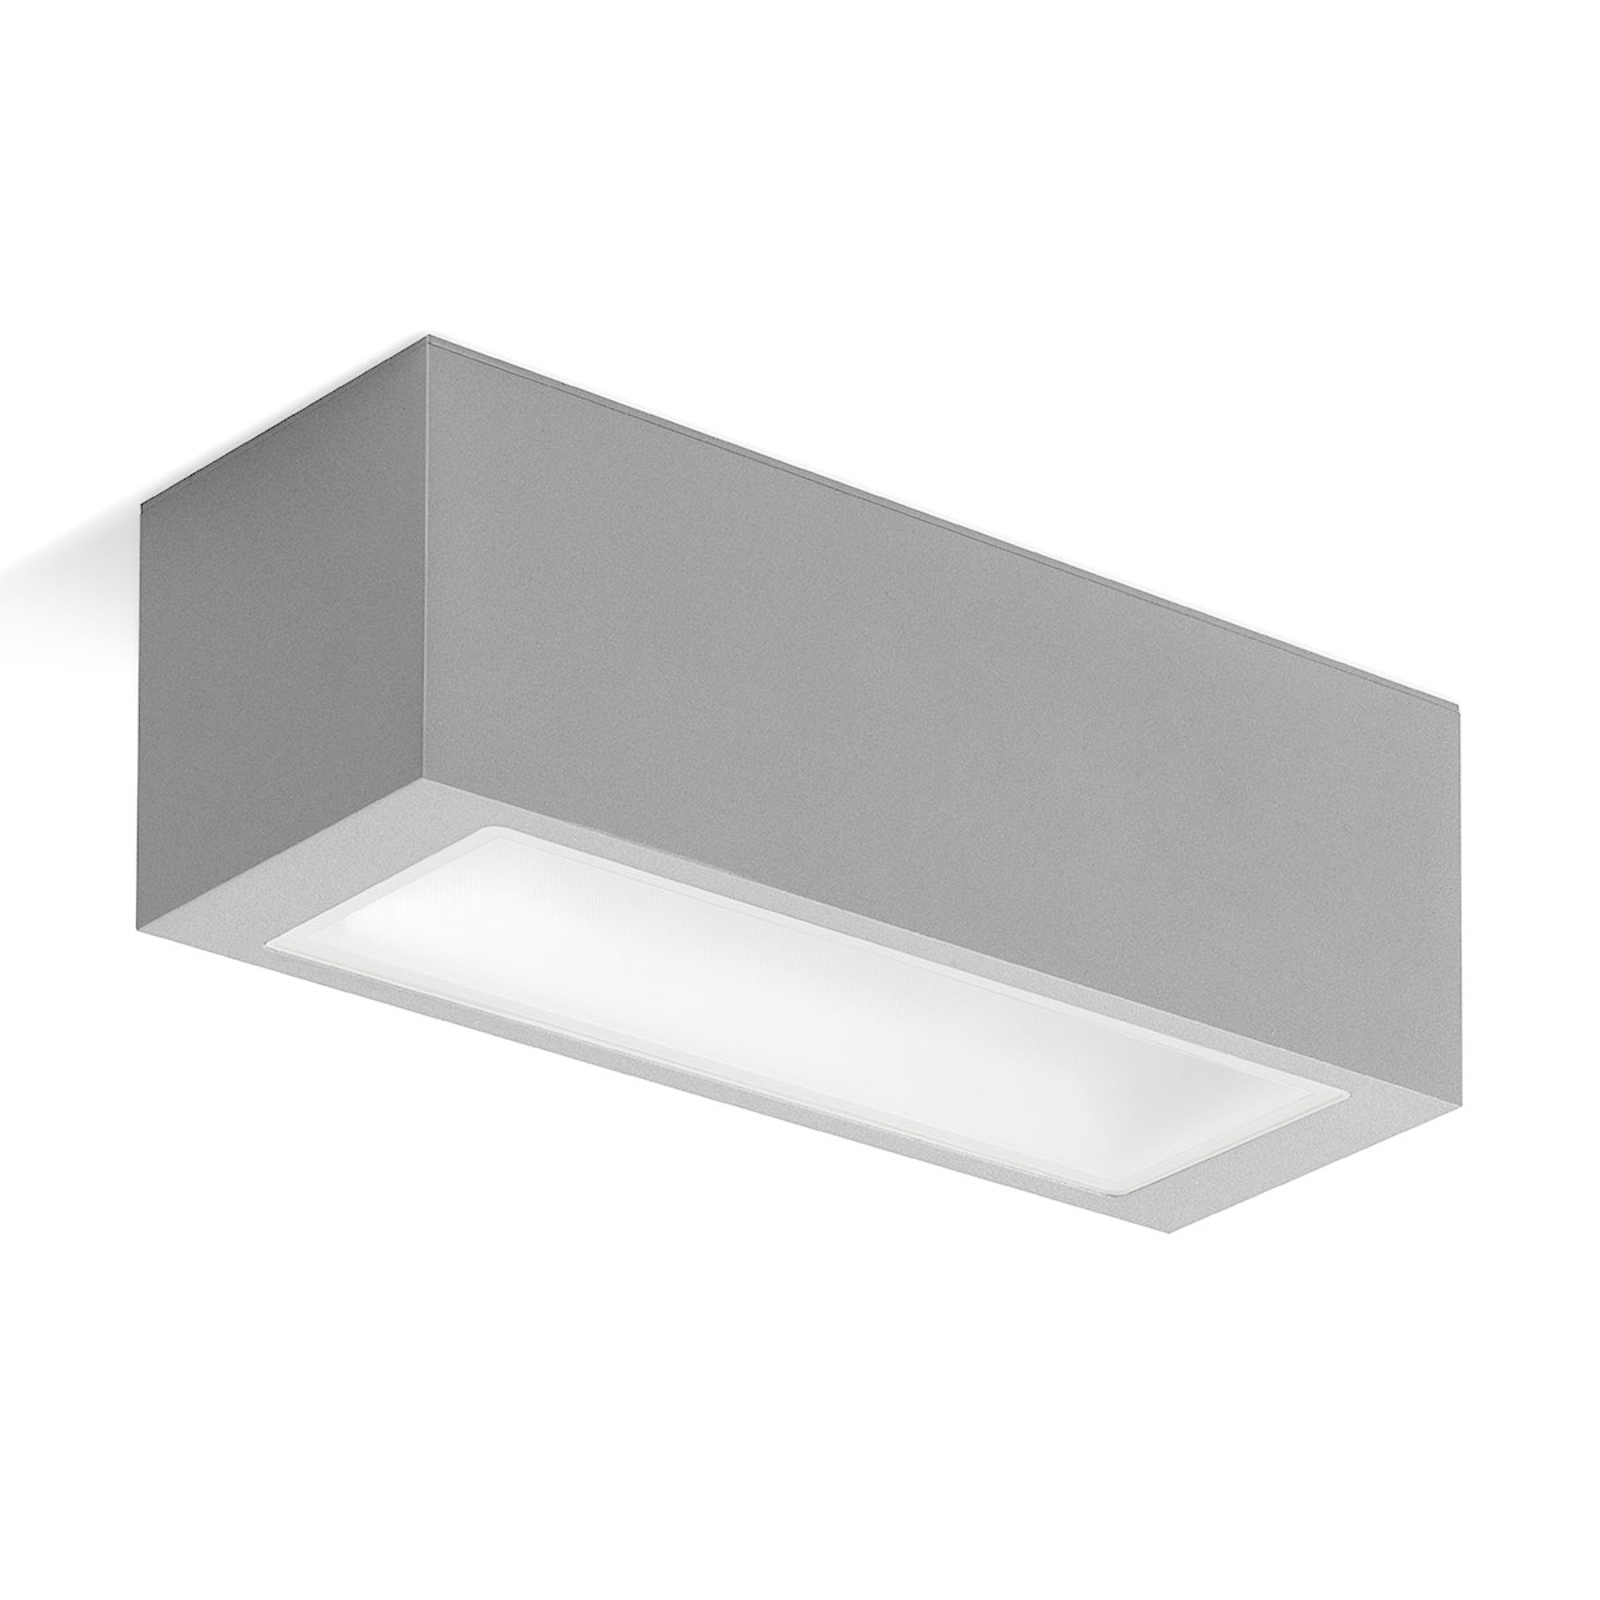 LED-vegglampe 303553, optisk asymmetrisk 4 000 K